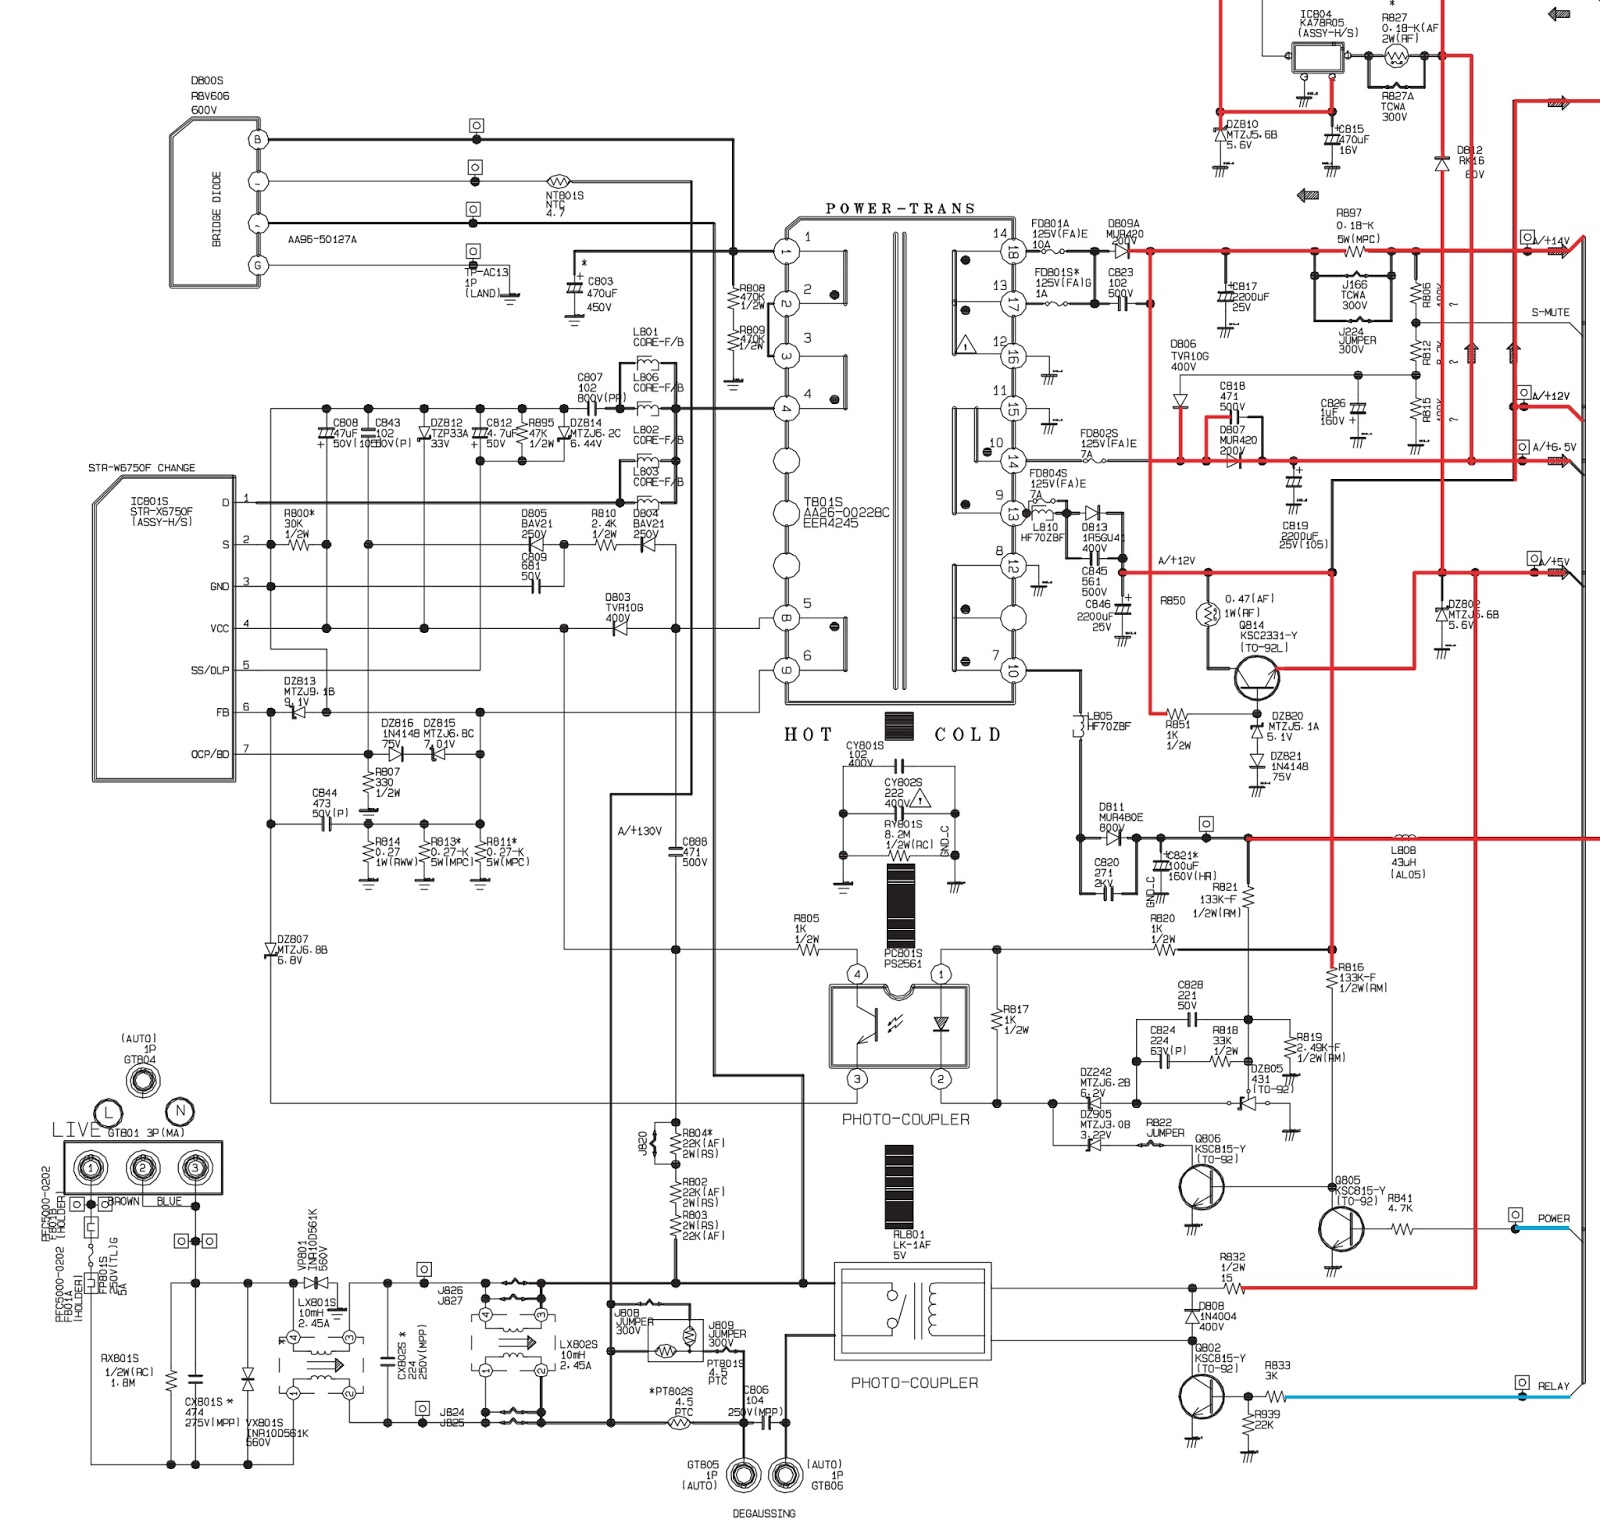 small resolution of samsung cl29x50 power supply smps schematic circuit diagram str x6750f